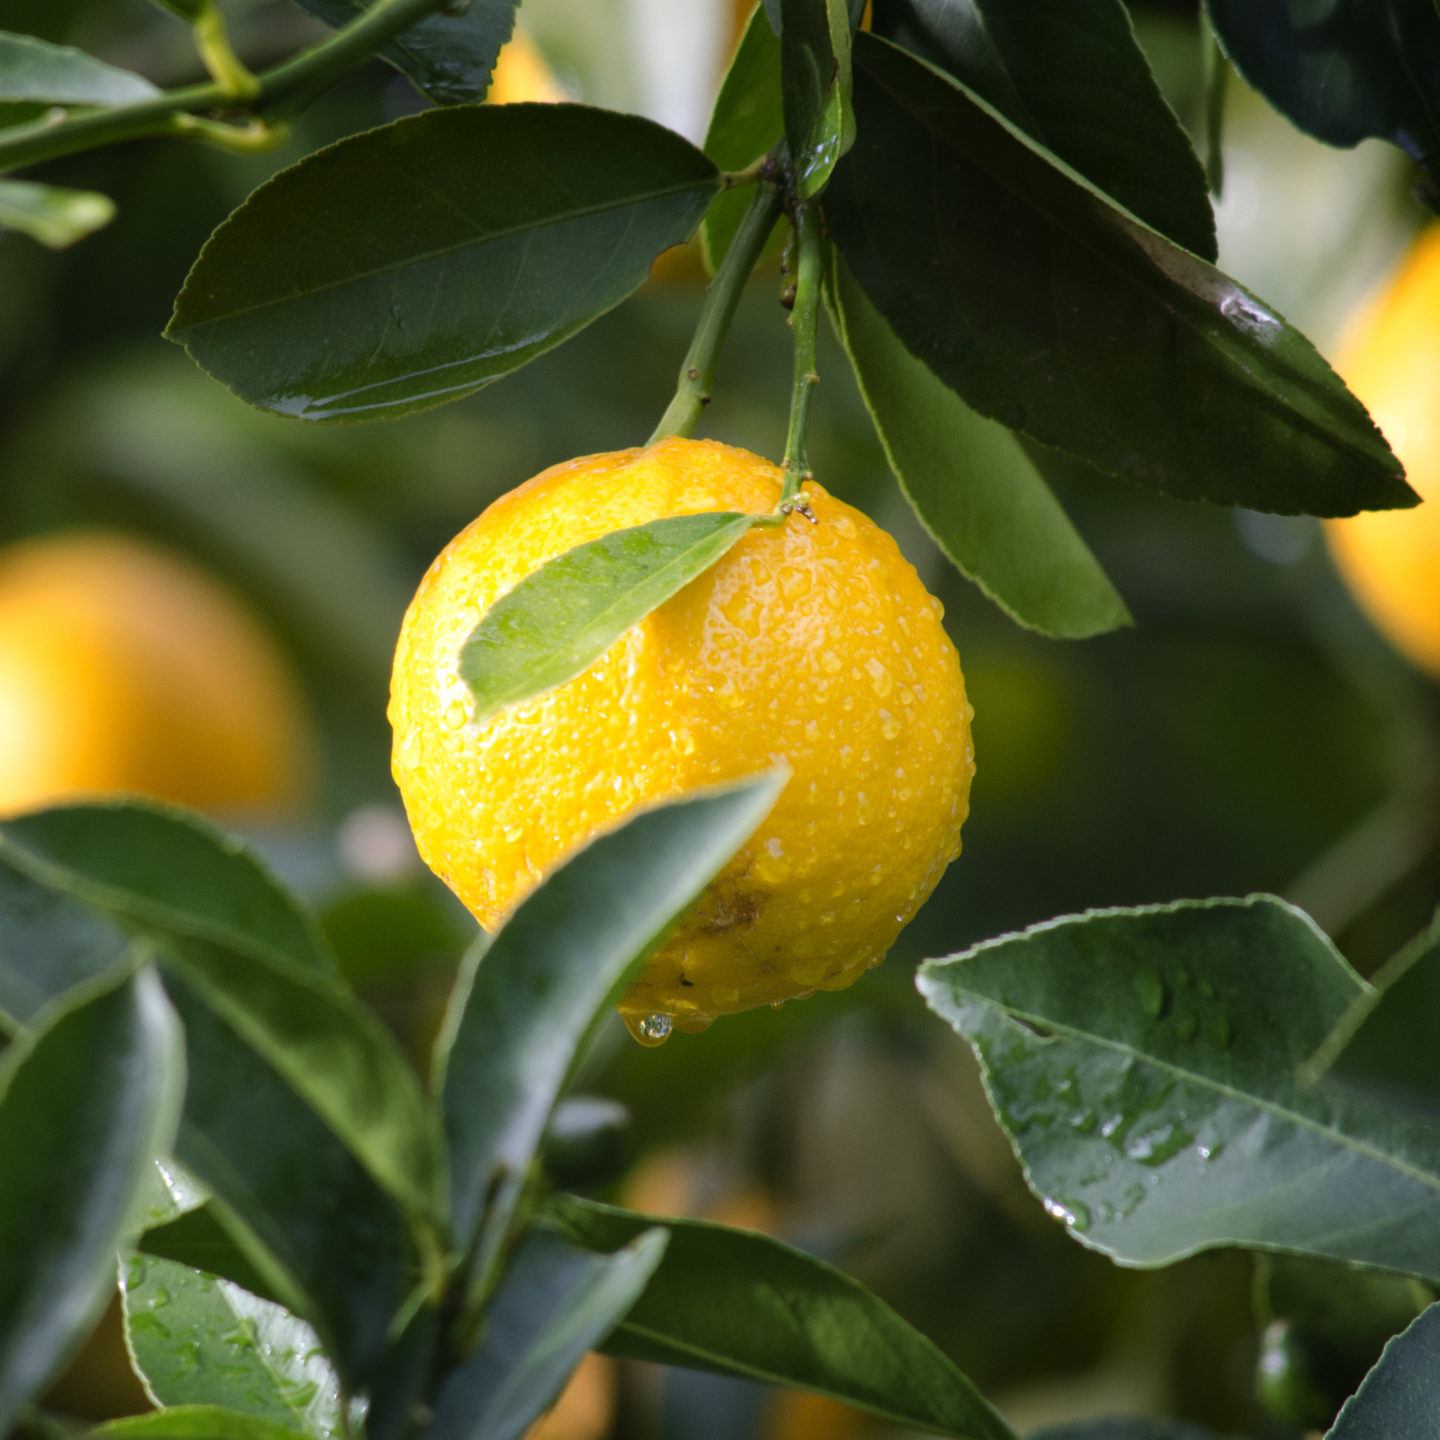 Development of canker-resistant citrus varieties using CRISPR/Cas9